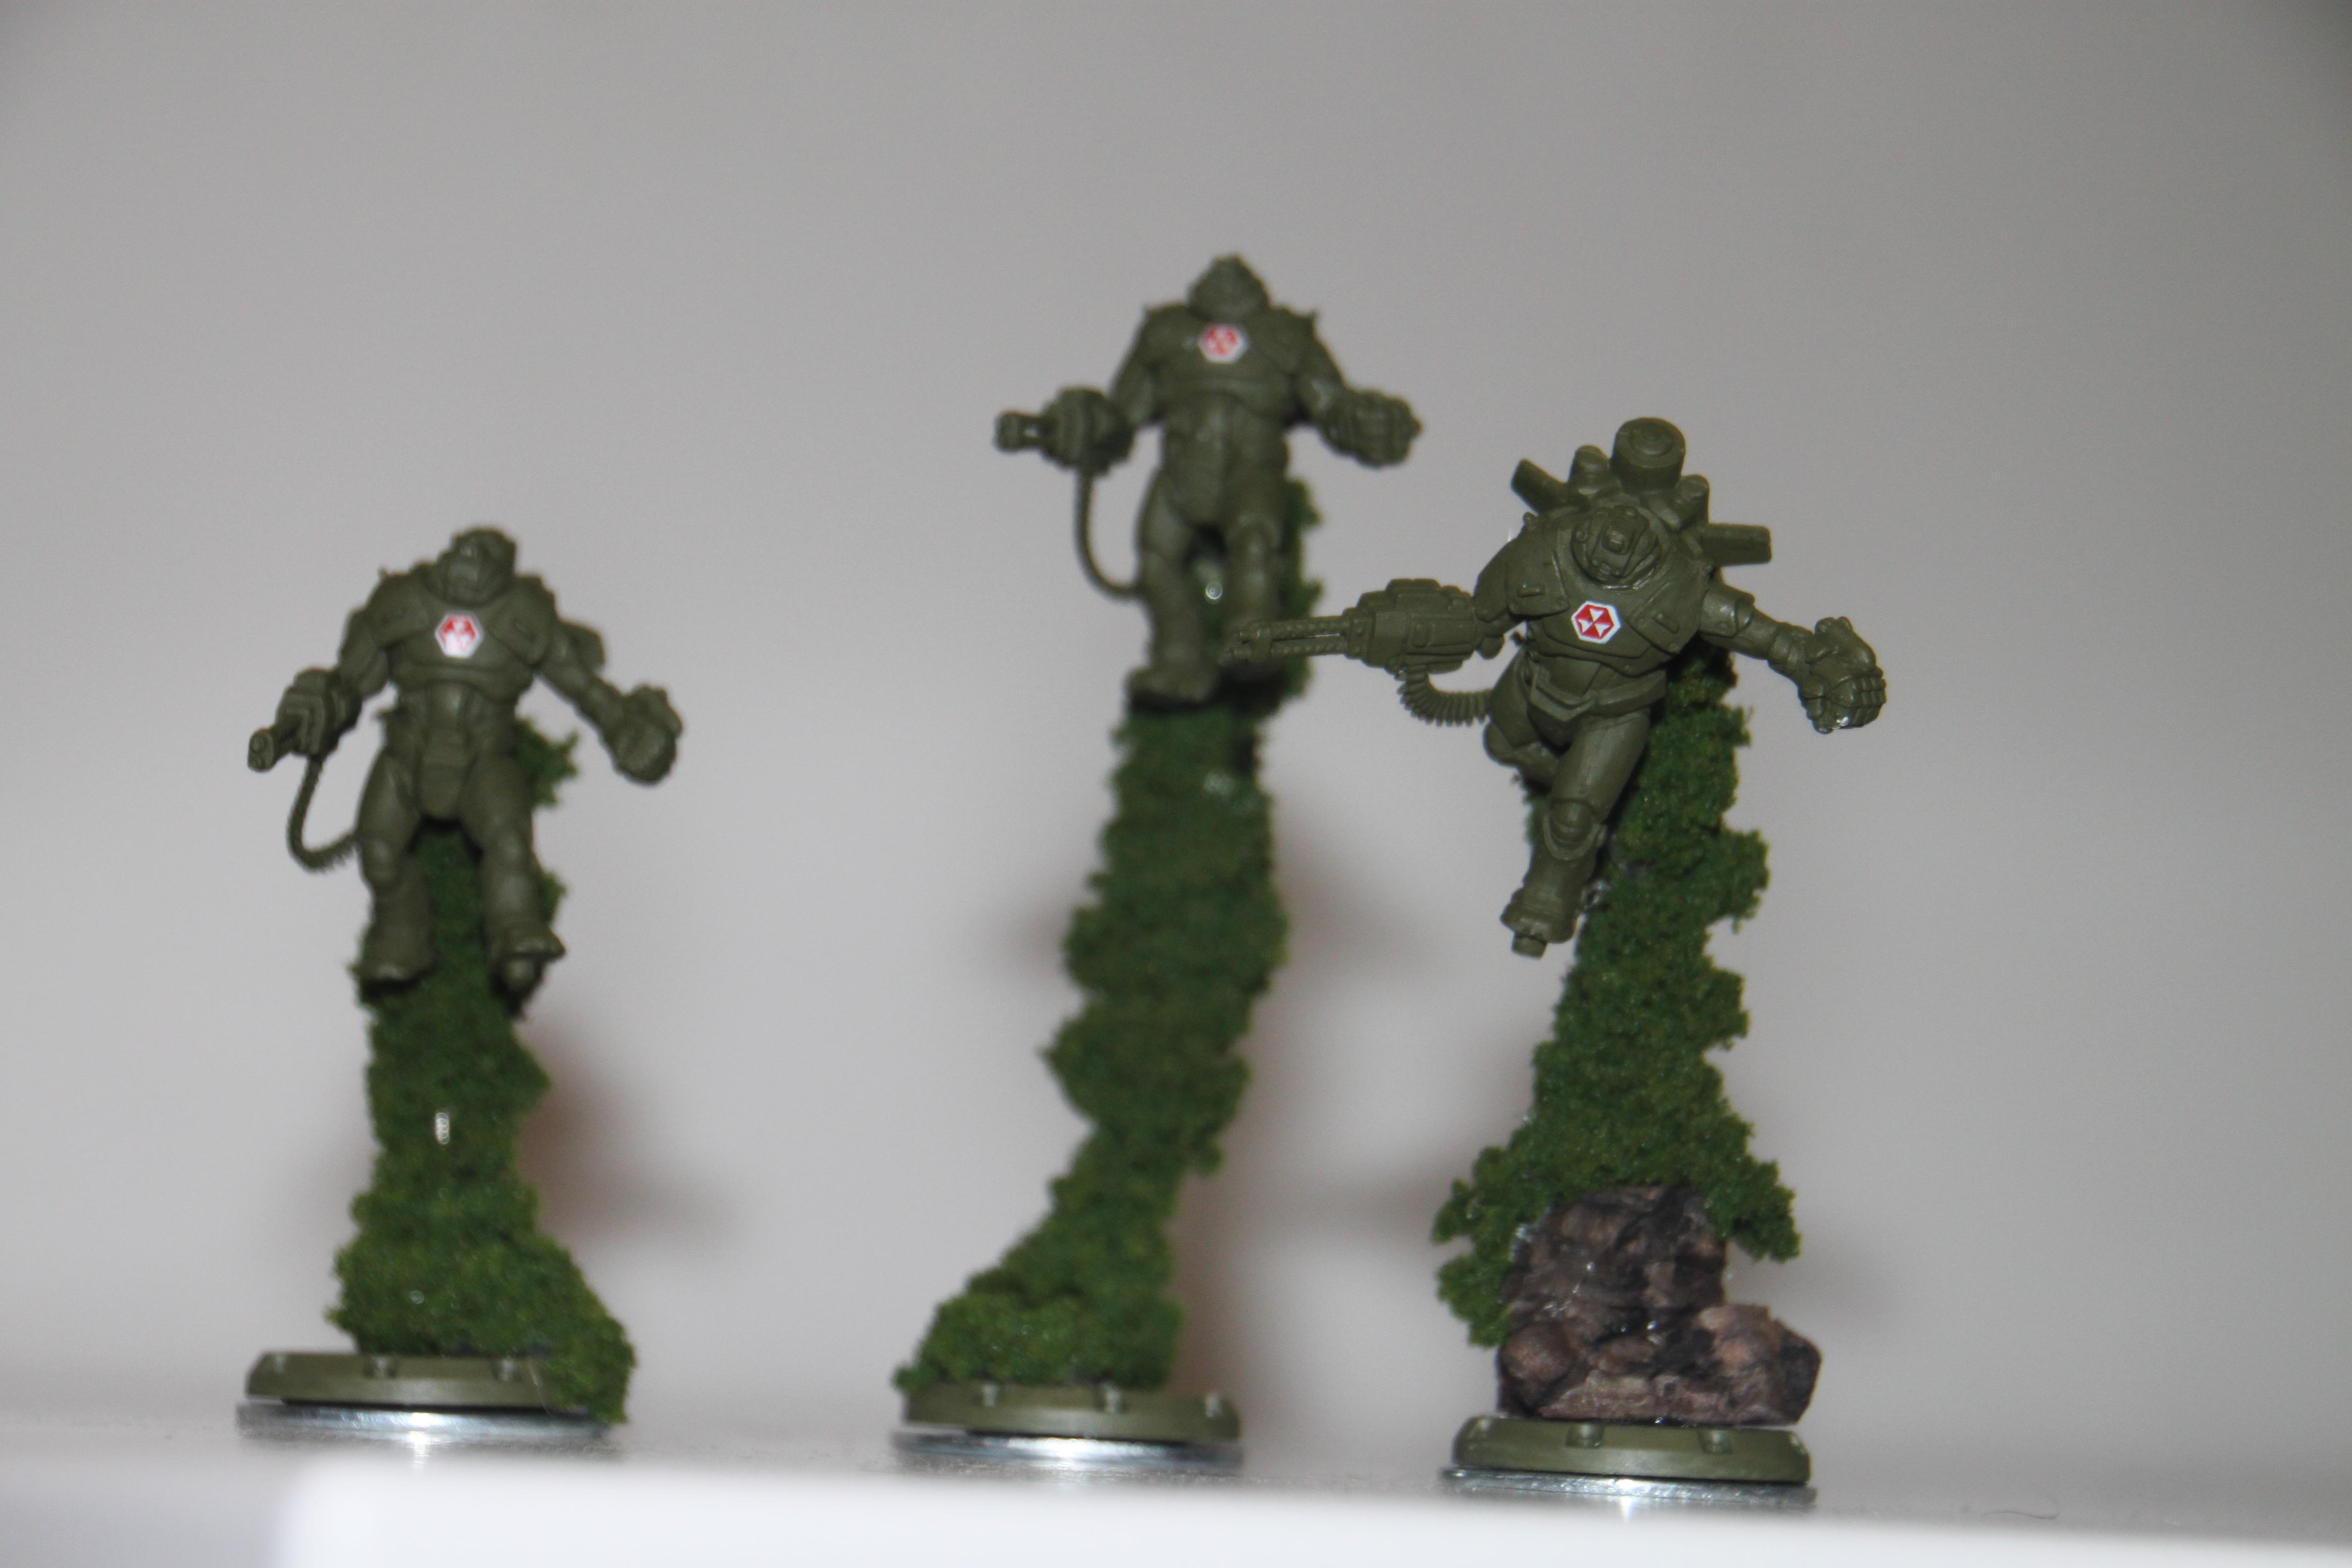 Allies, Conversion, Dust, Flyer, Grim Reapers, Iron Man, Jet Pack